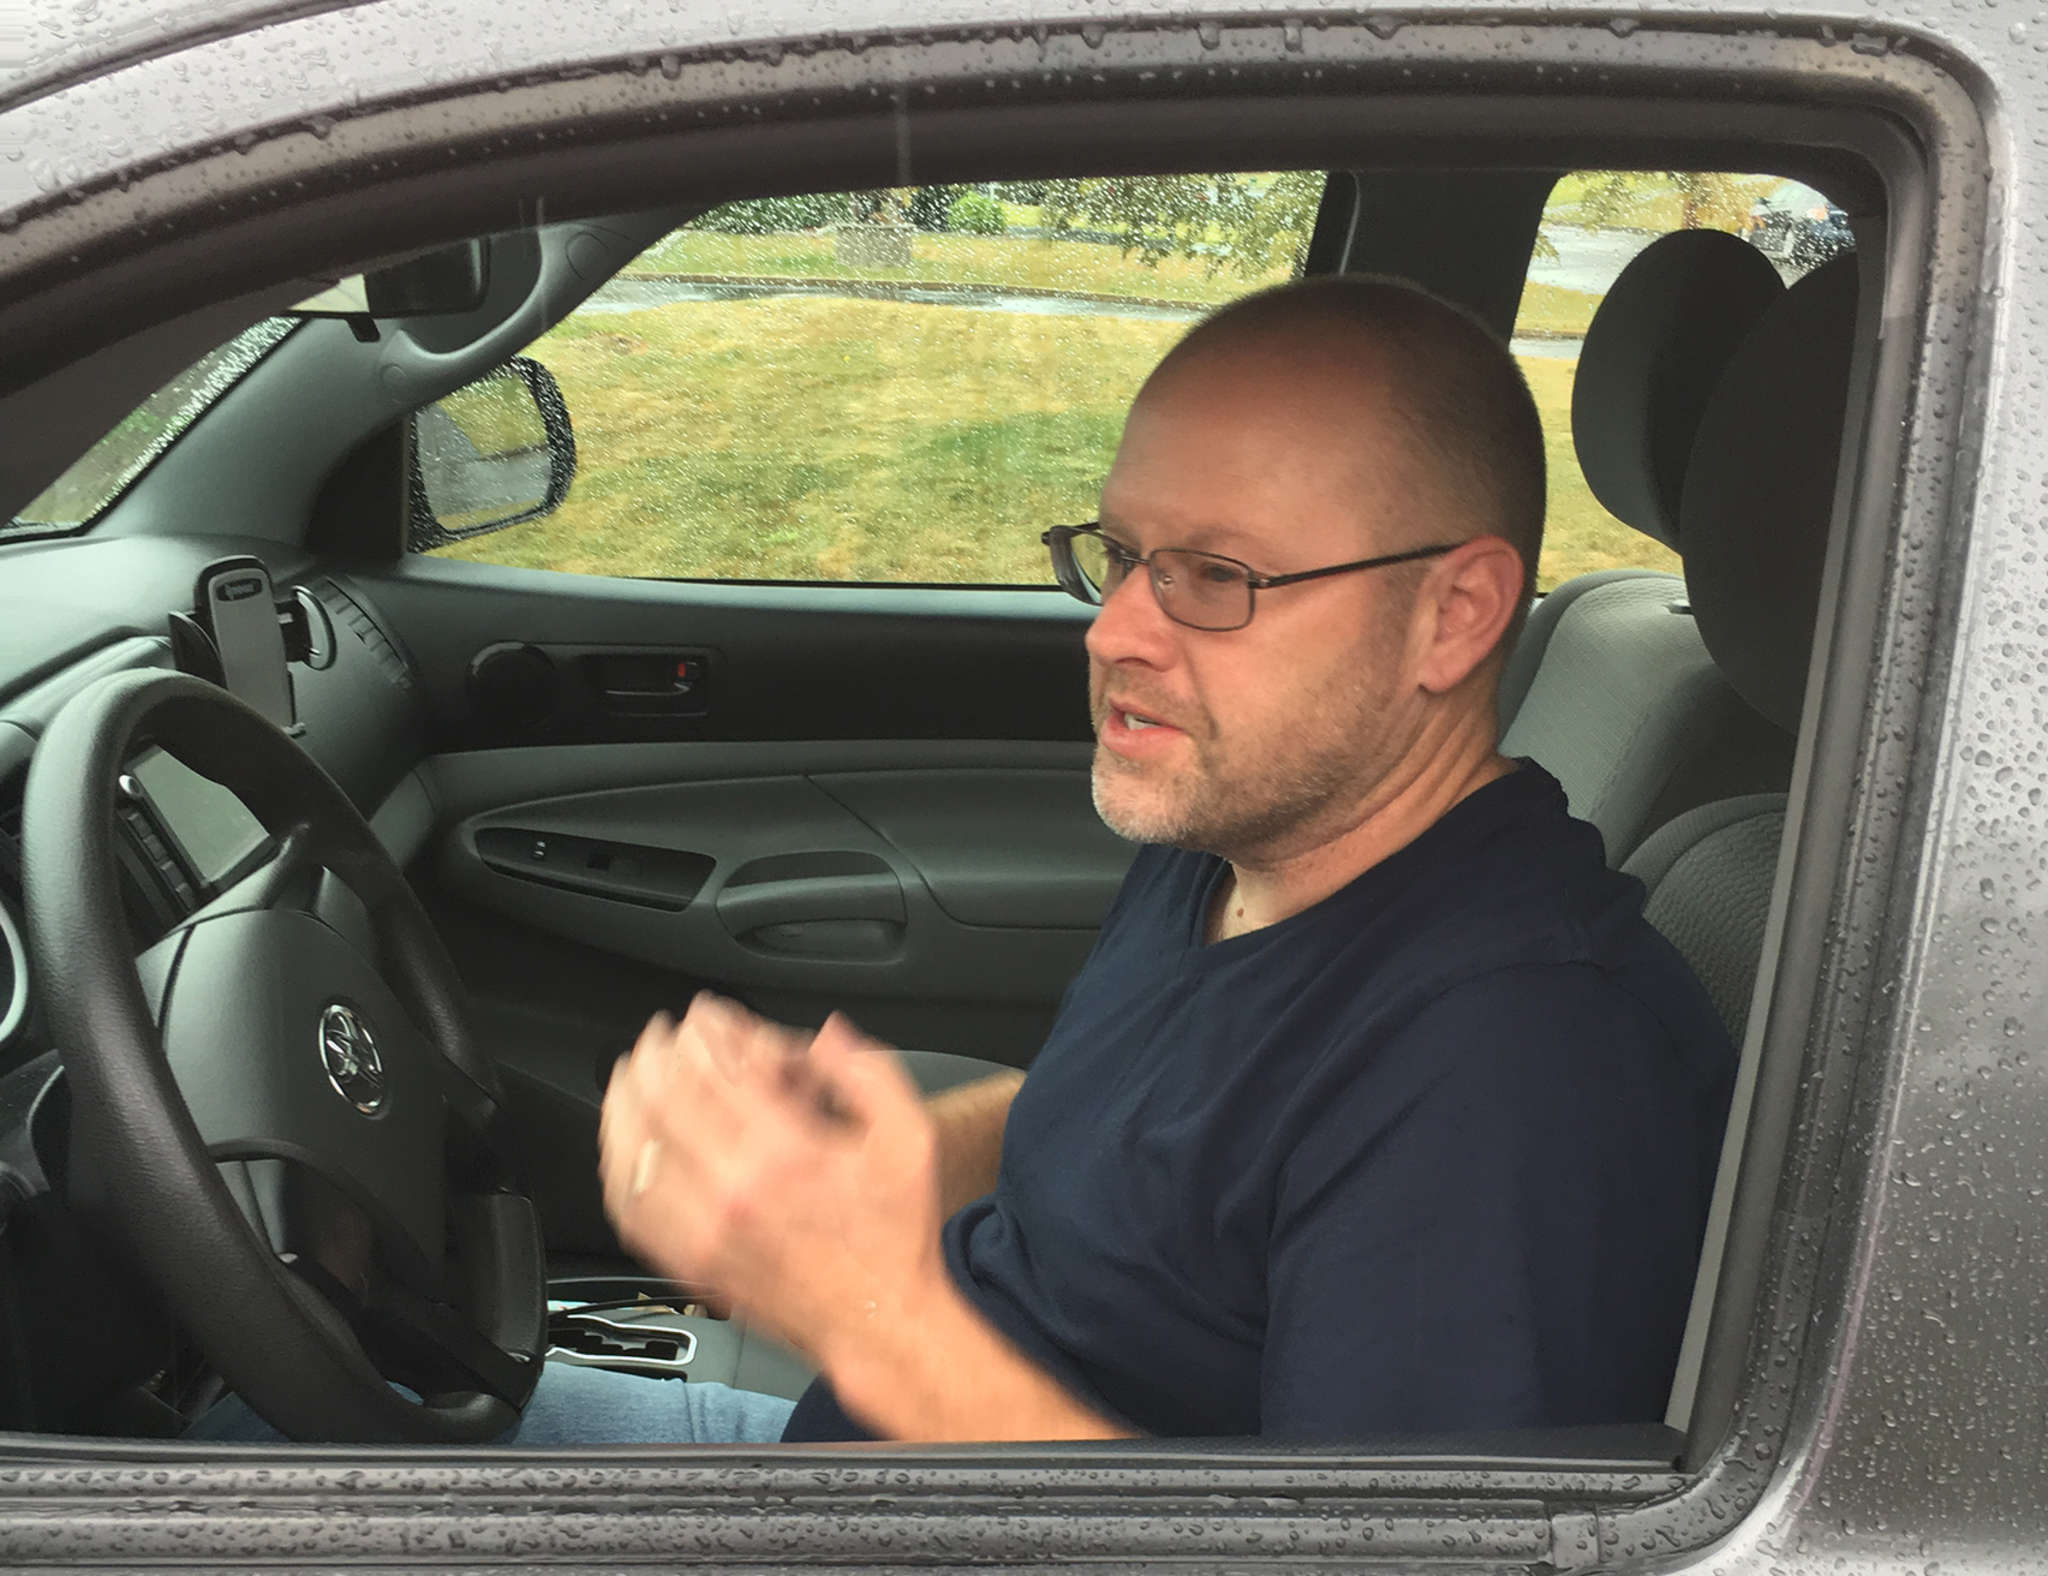 Shawn Gill at the wheel of his 2014 Toyota Tacoma that he drove for Lyft and Uber, until his license was suspended as a result of identity theft.